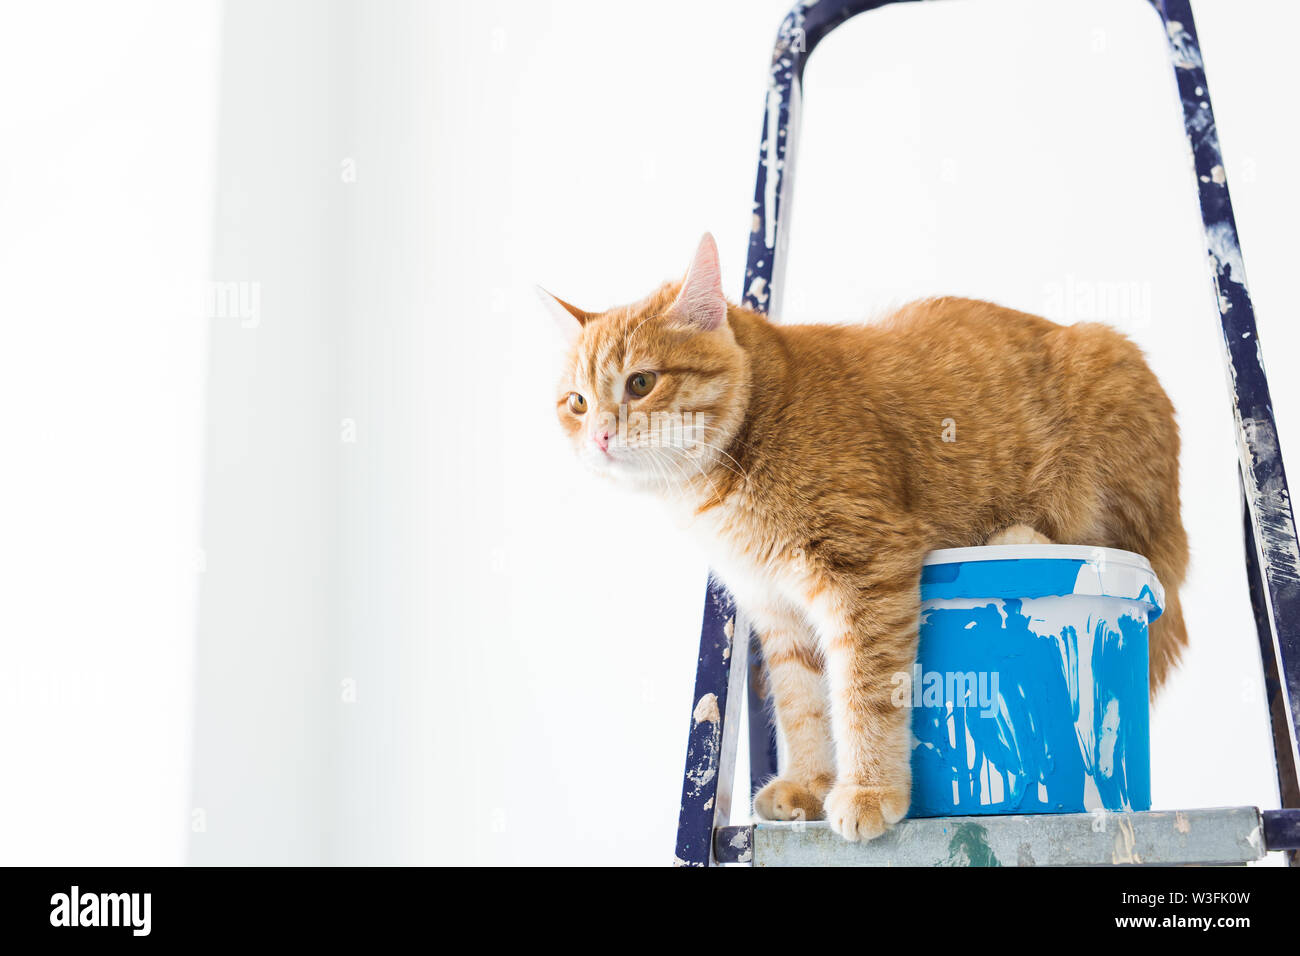 Repair, painting the walls, the cat sits on the stepladder. Funny picture. - Stock Image